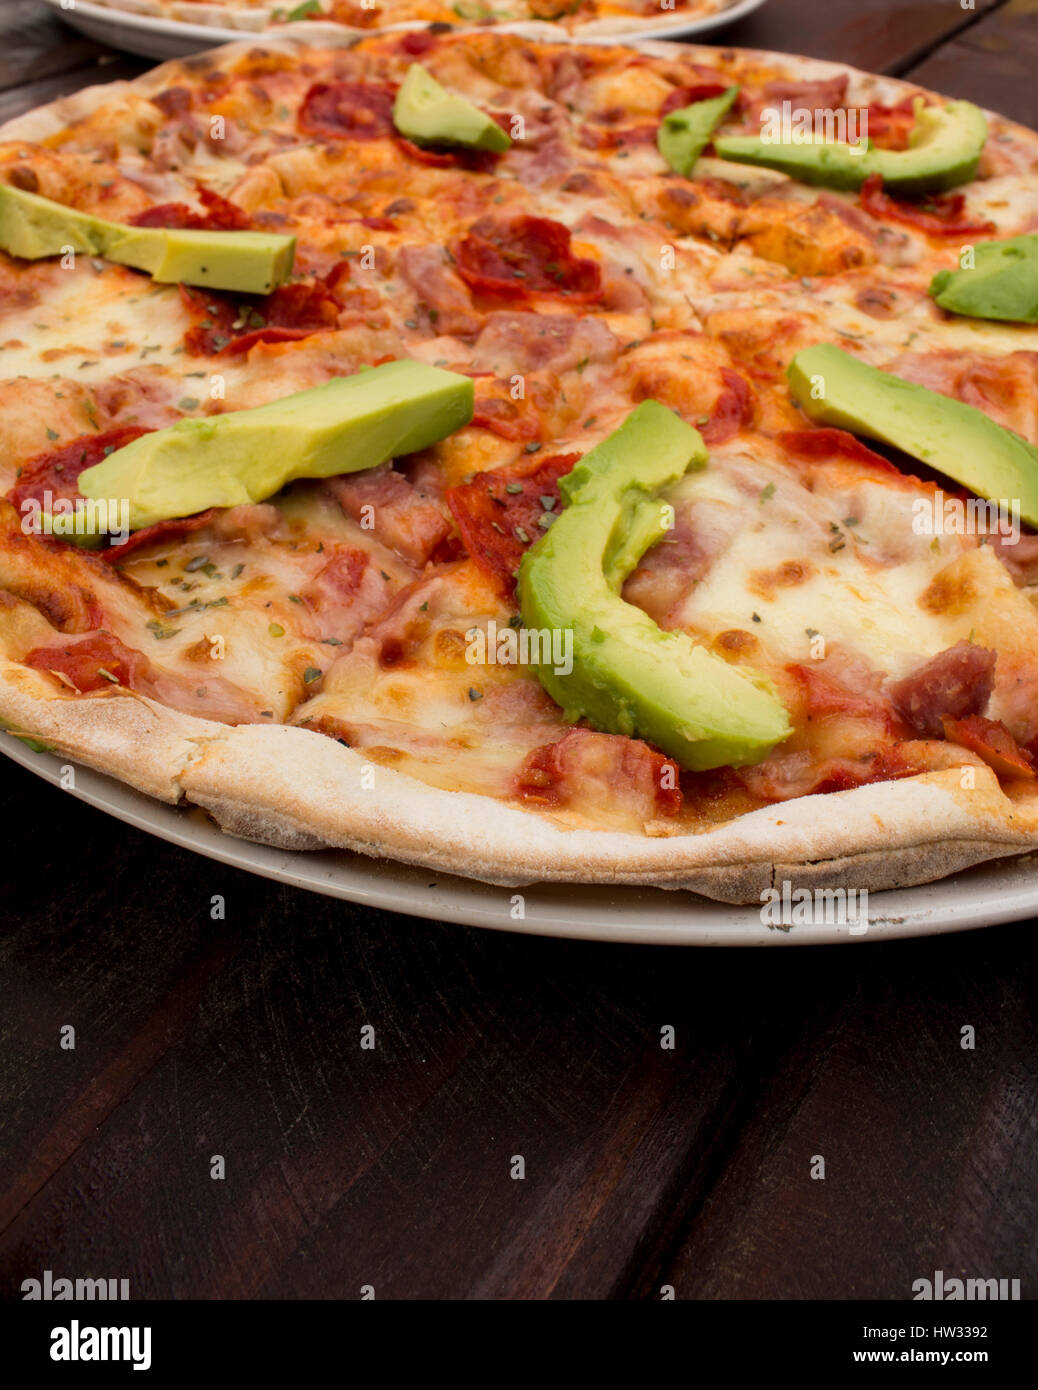 Pizza on dark wooden table top with fresh ingredients - Stock Image